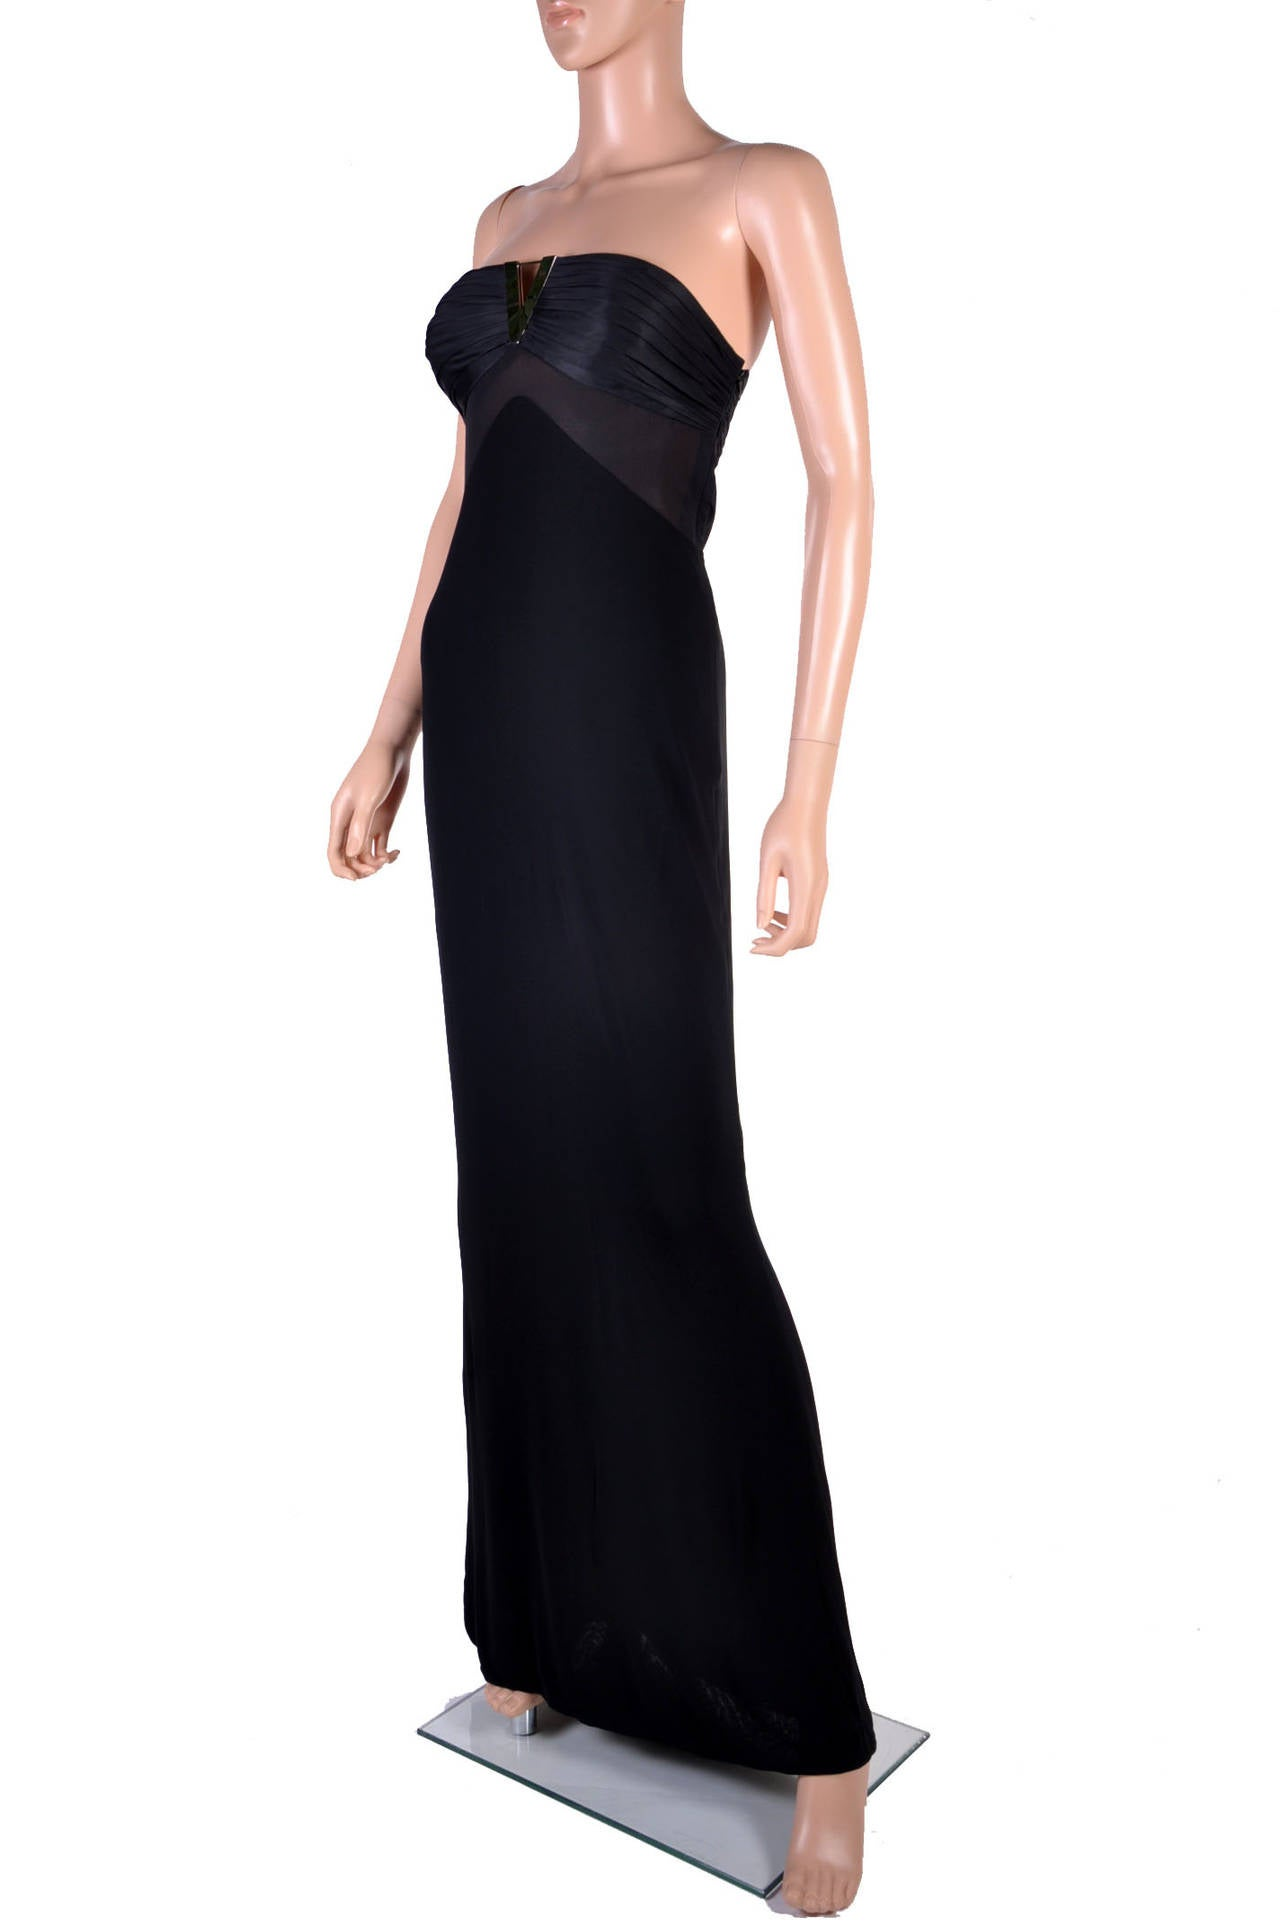 Women's New VERSACE BLACK STRAPLESS DRESS GOWN For Sale